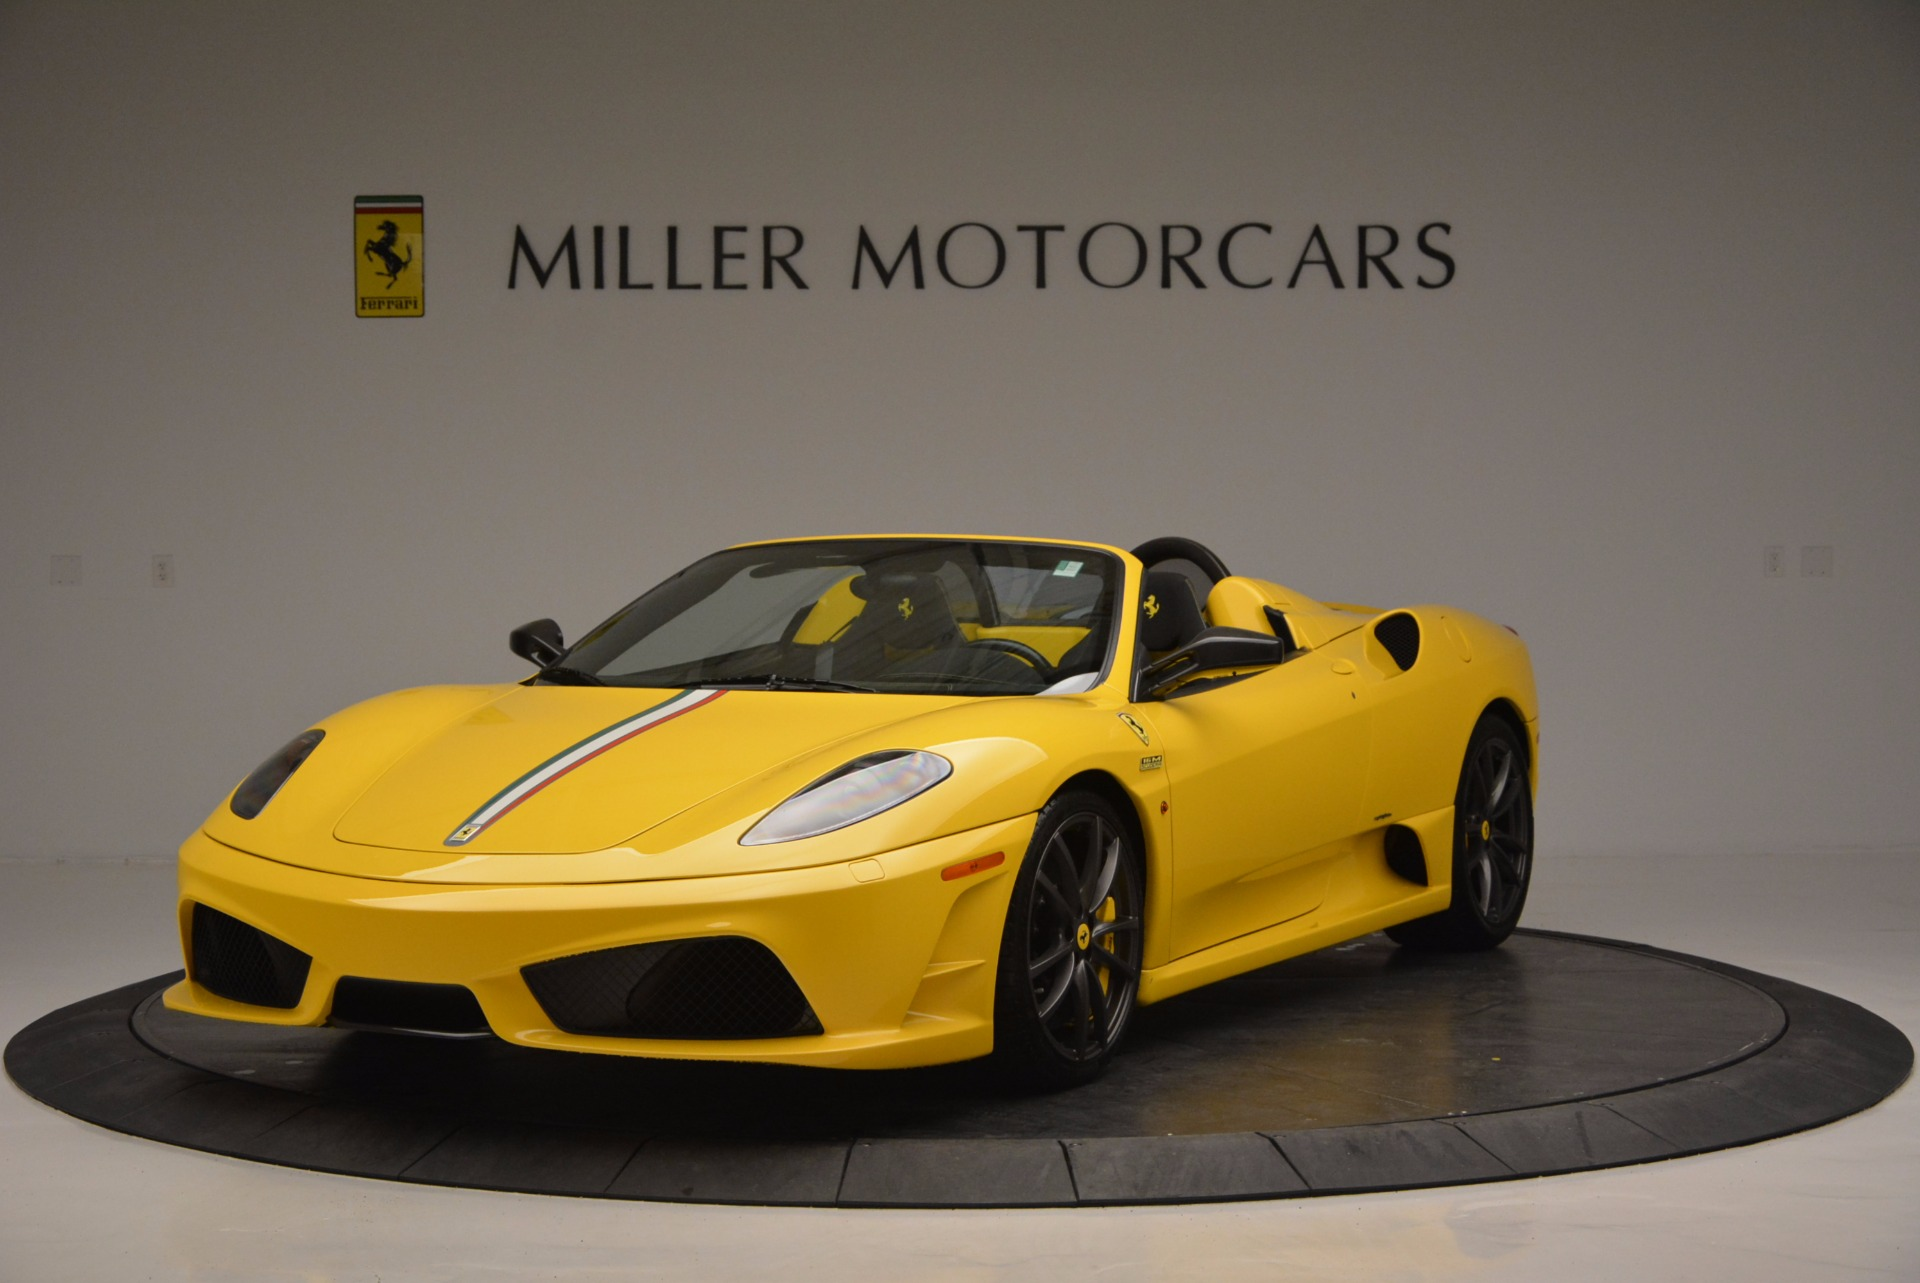 Used 2009 Ferrari F430 Scuderia 16M for sale Sold at Maserati of Greenwich in Greenwich CT 06830 1